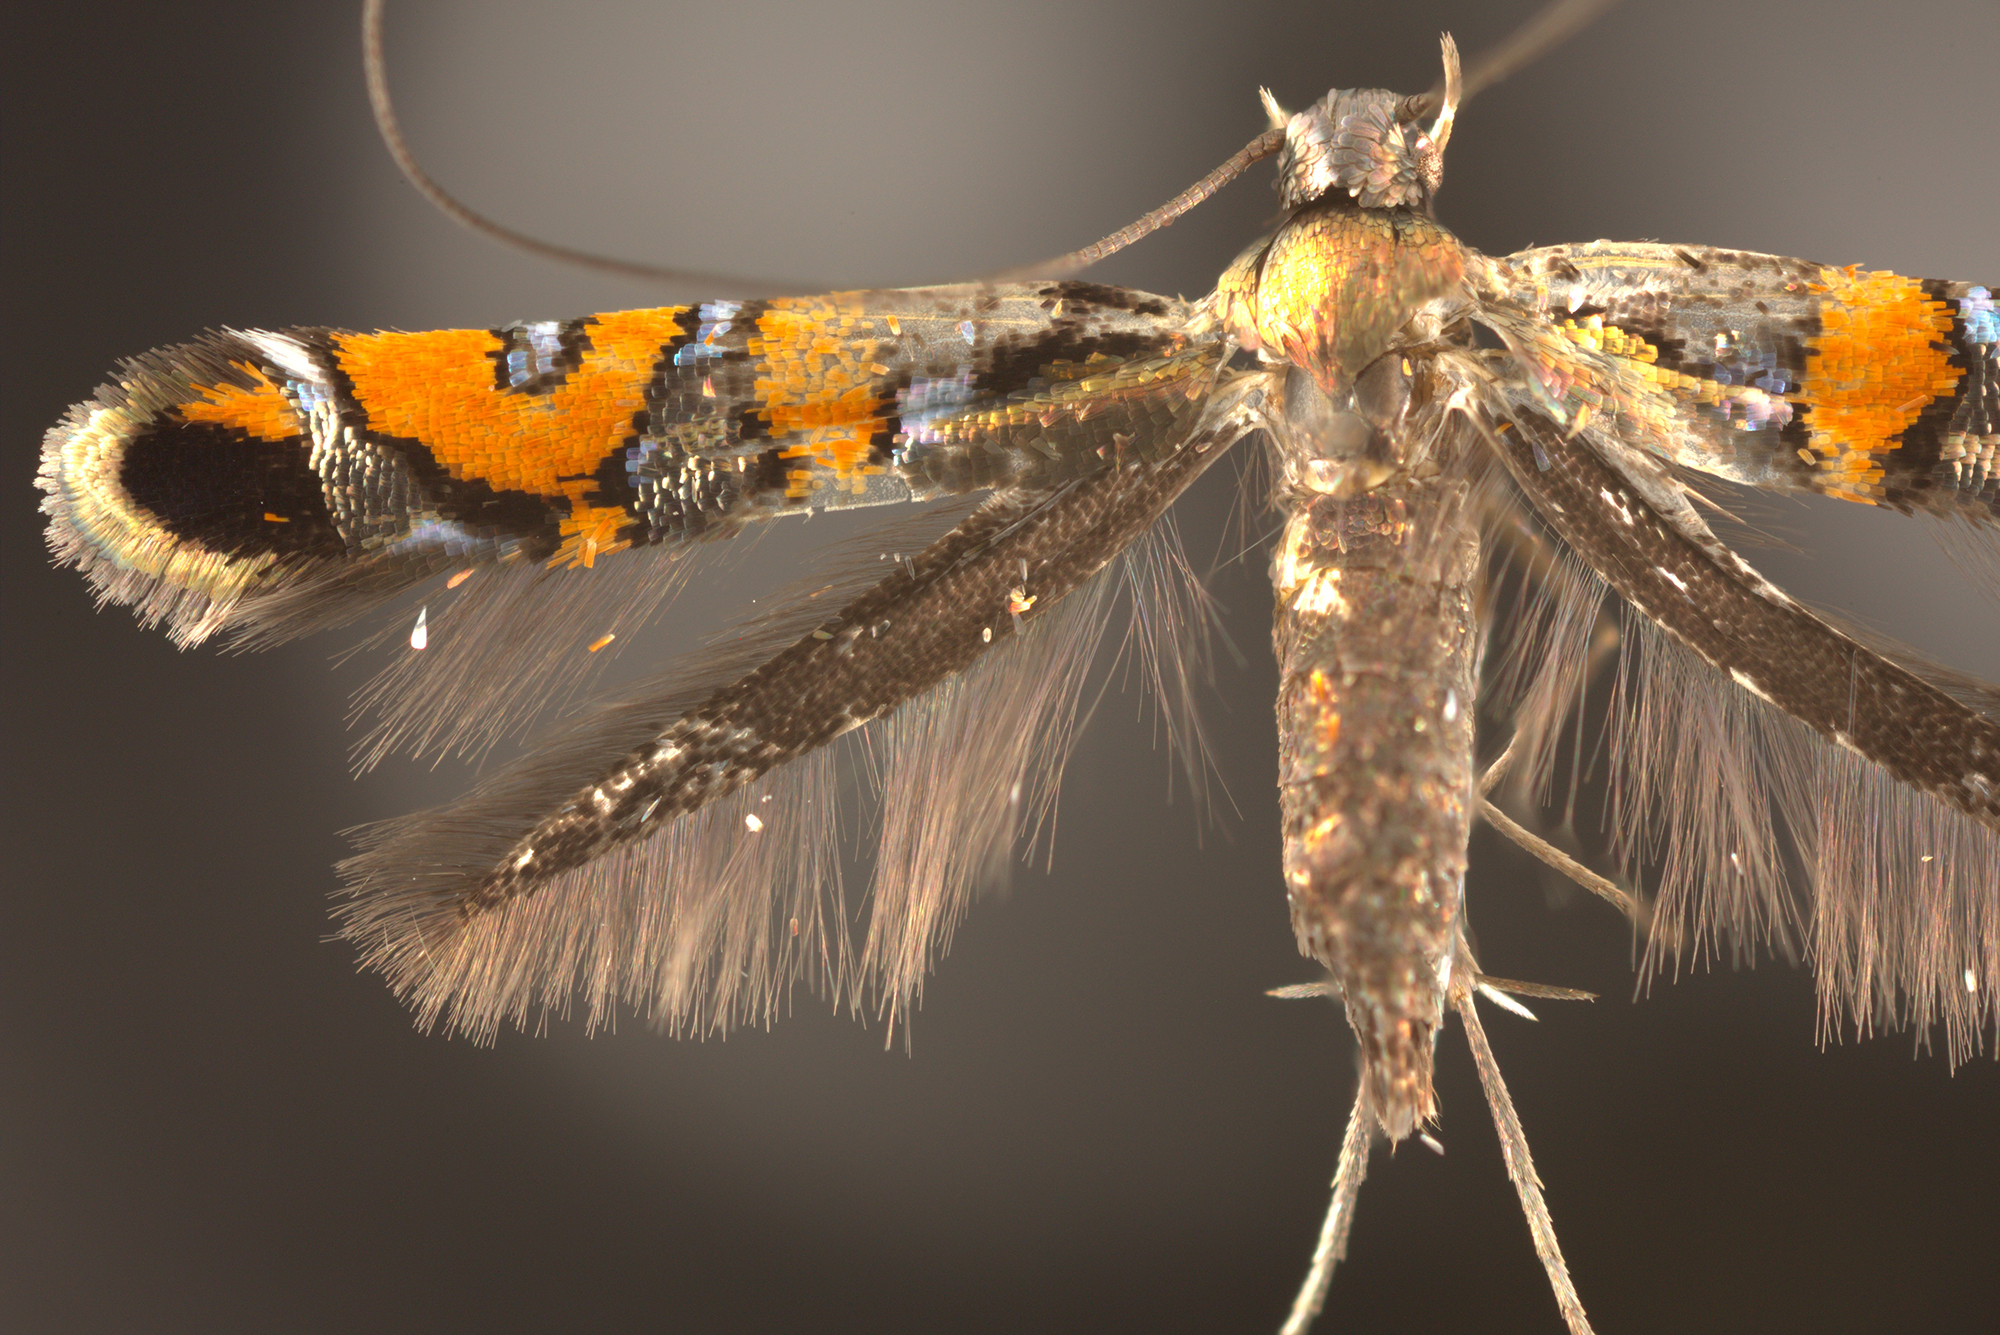 close up of moth wings and body